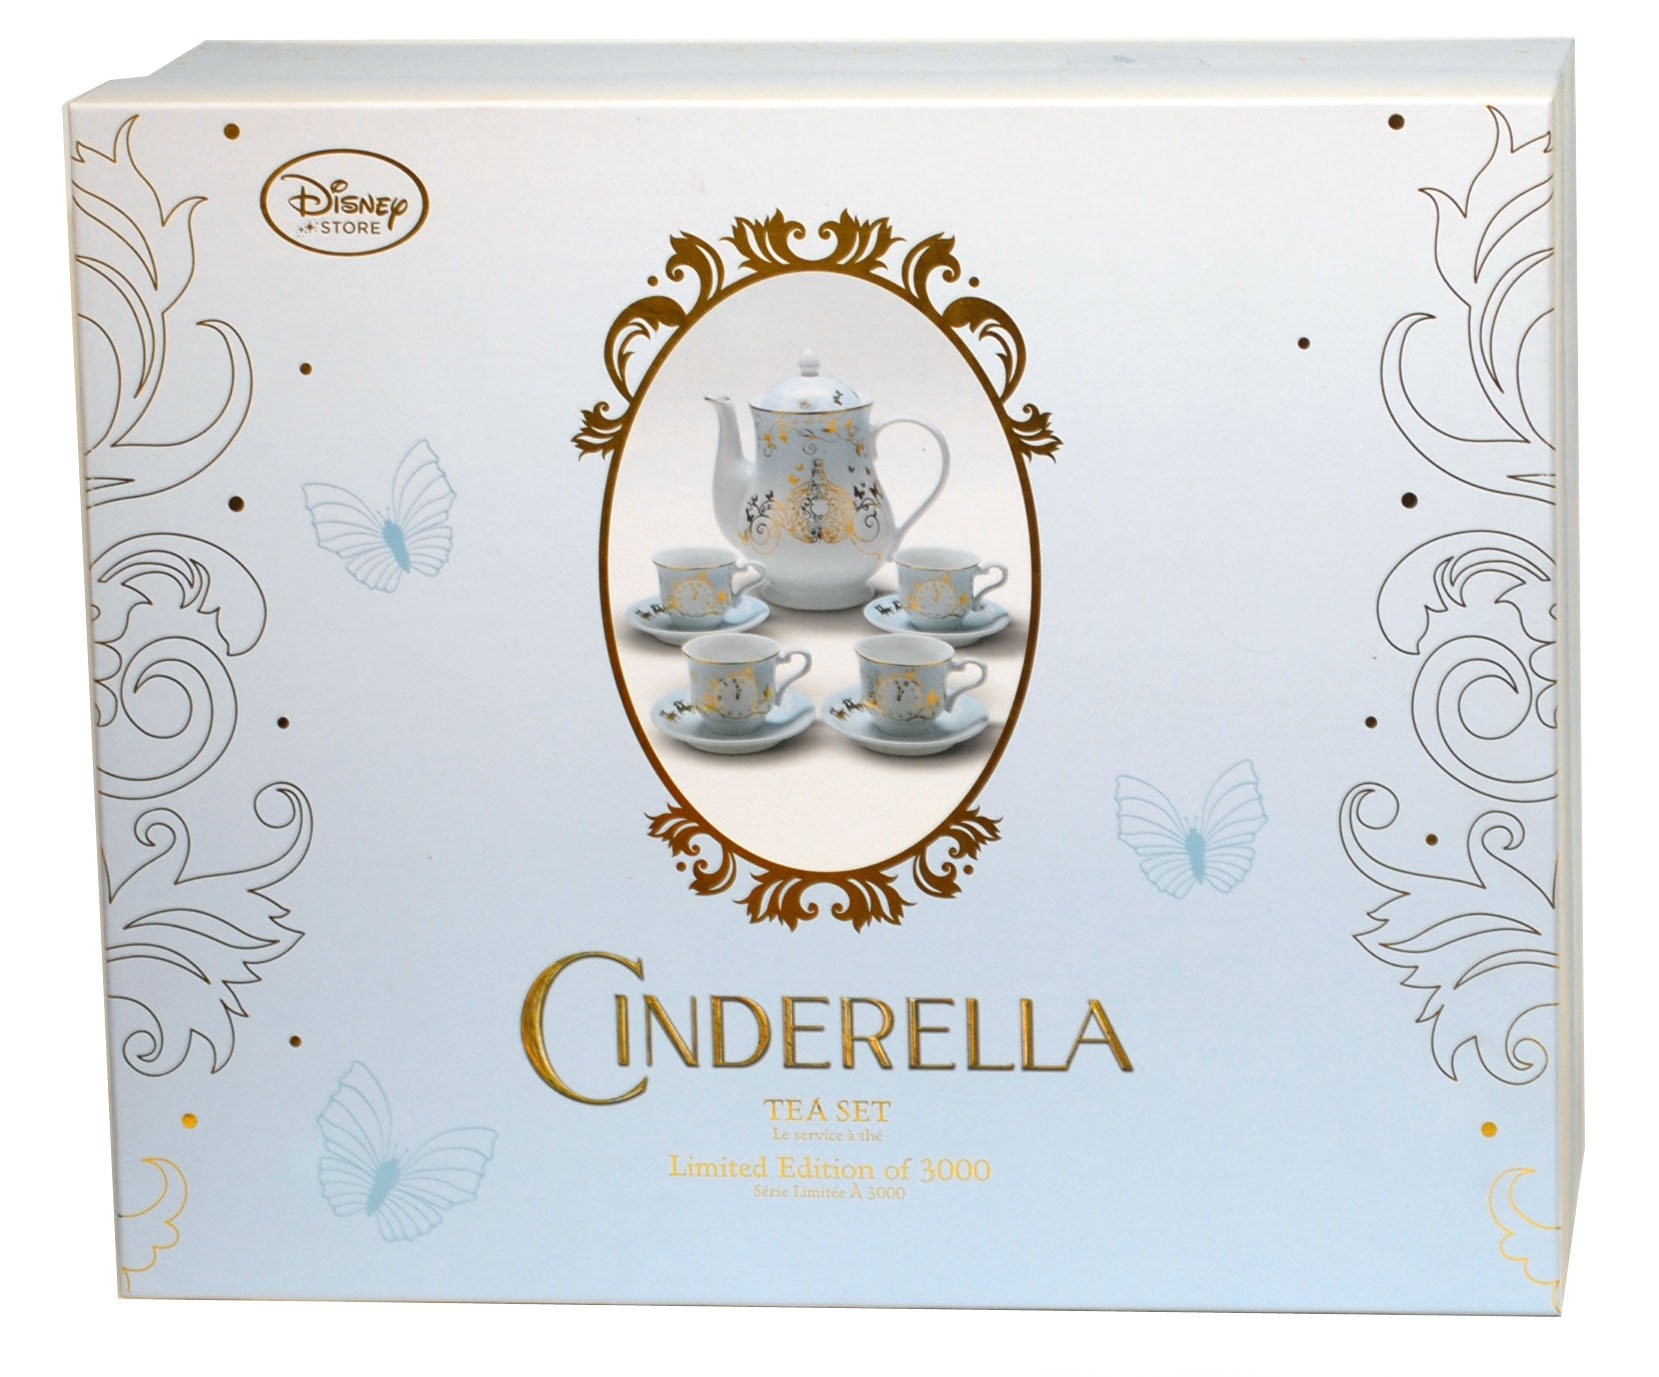 Disney Store Cinderella Tea Set Limited Edition 3000 Live Action Movie New